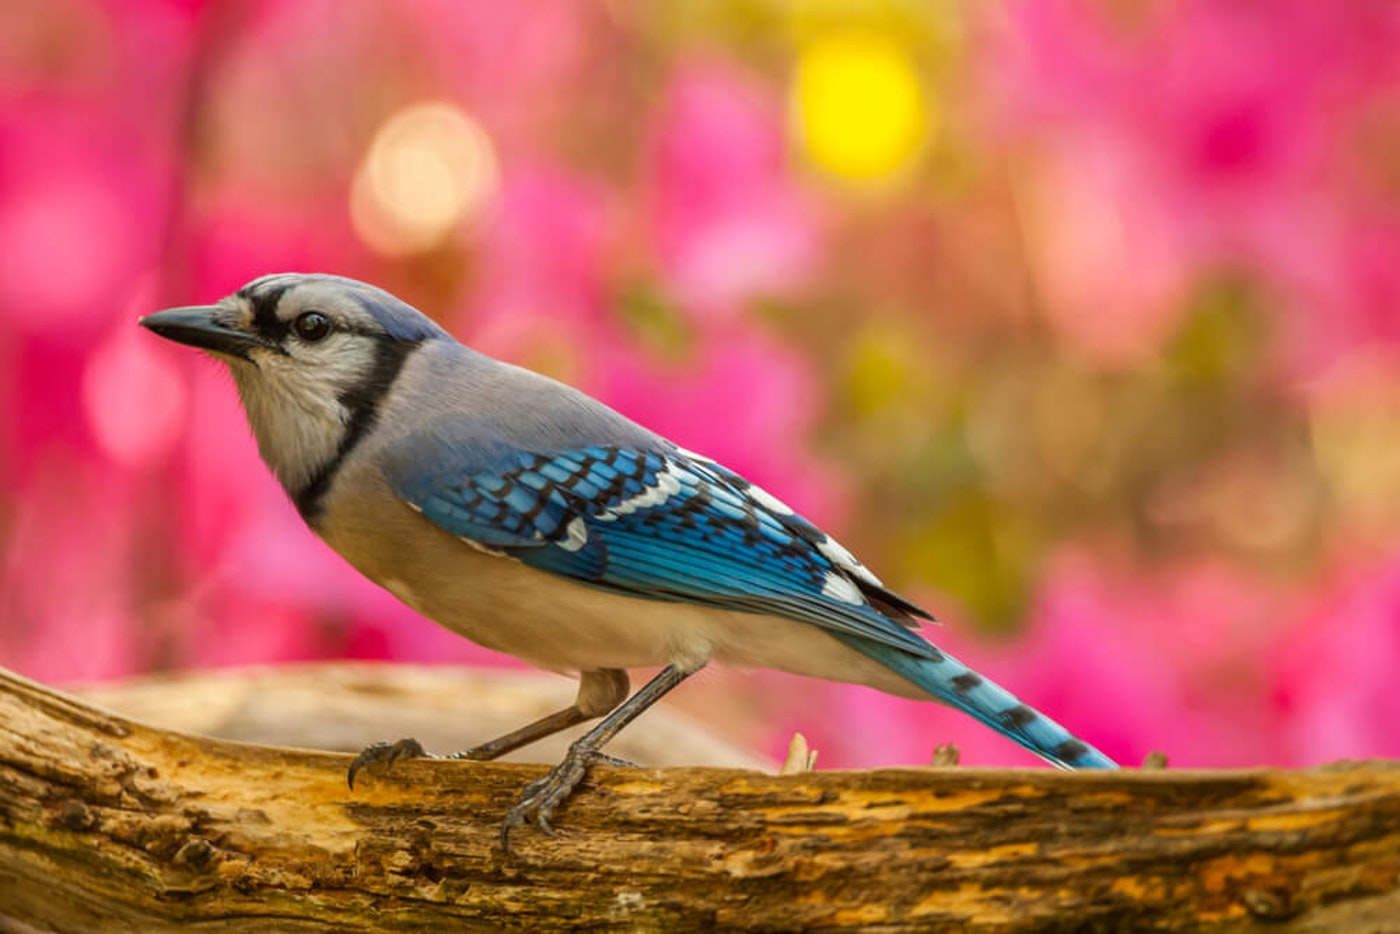 """A blue jay gives us a gorgeous view in Guilford County. A """"mysterious disease"""" impacting songbirds across the U.S. appears to have missed our feathered friends in North Carolina. (Image via Shutterstock)"""